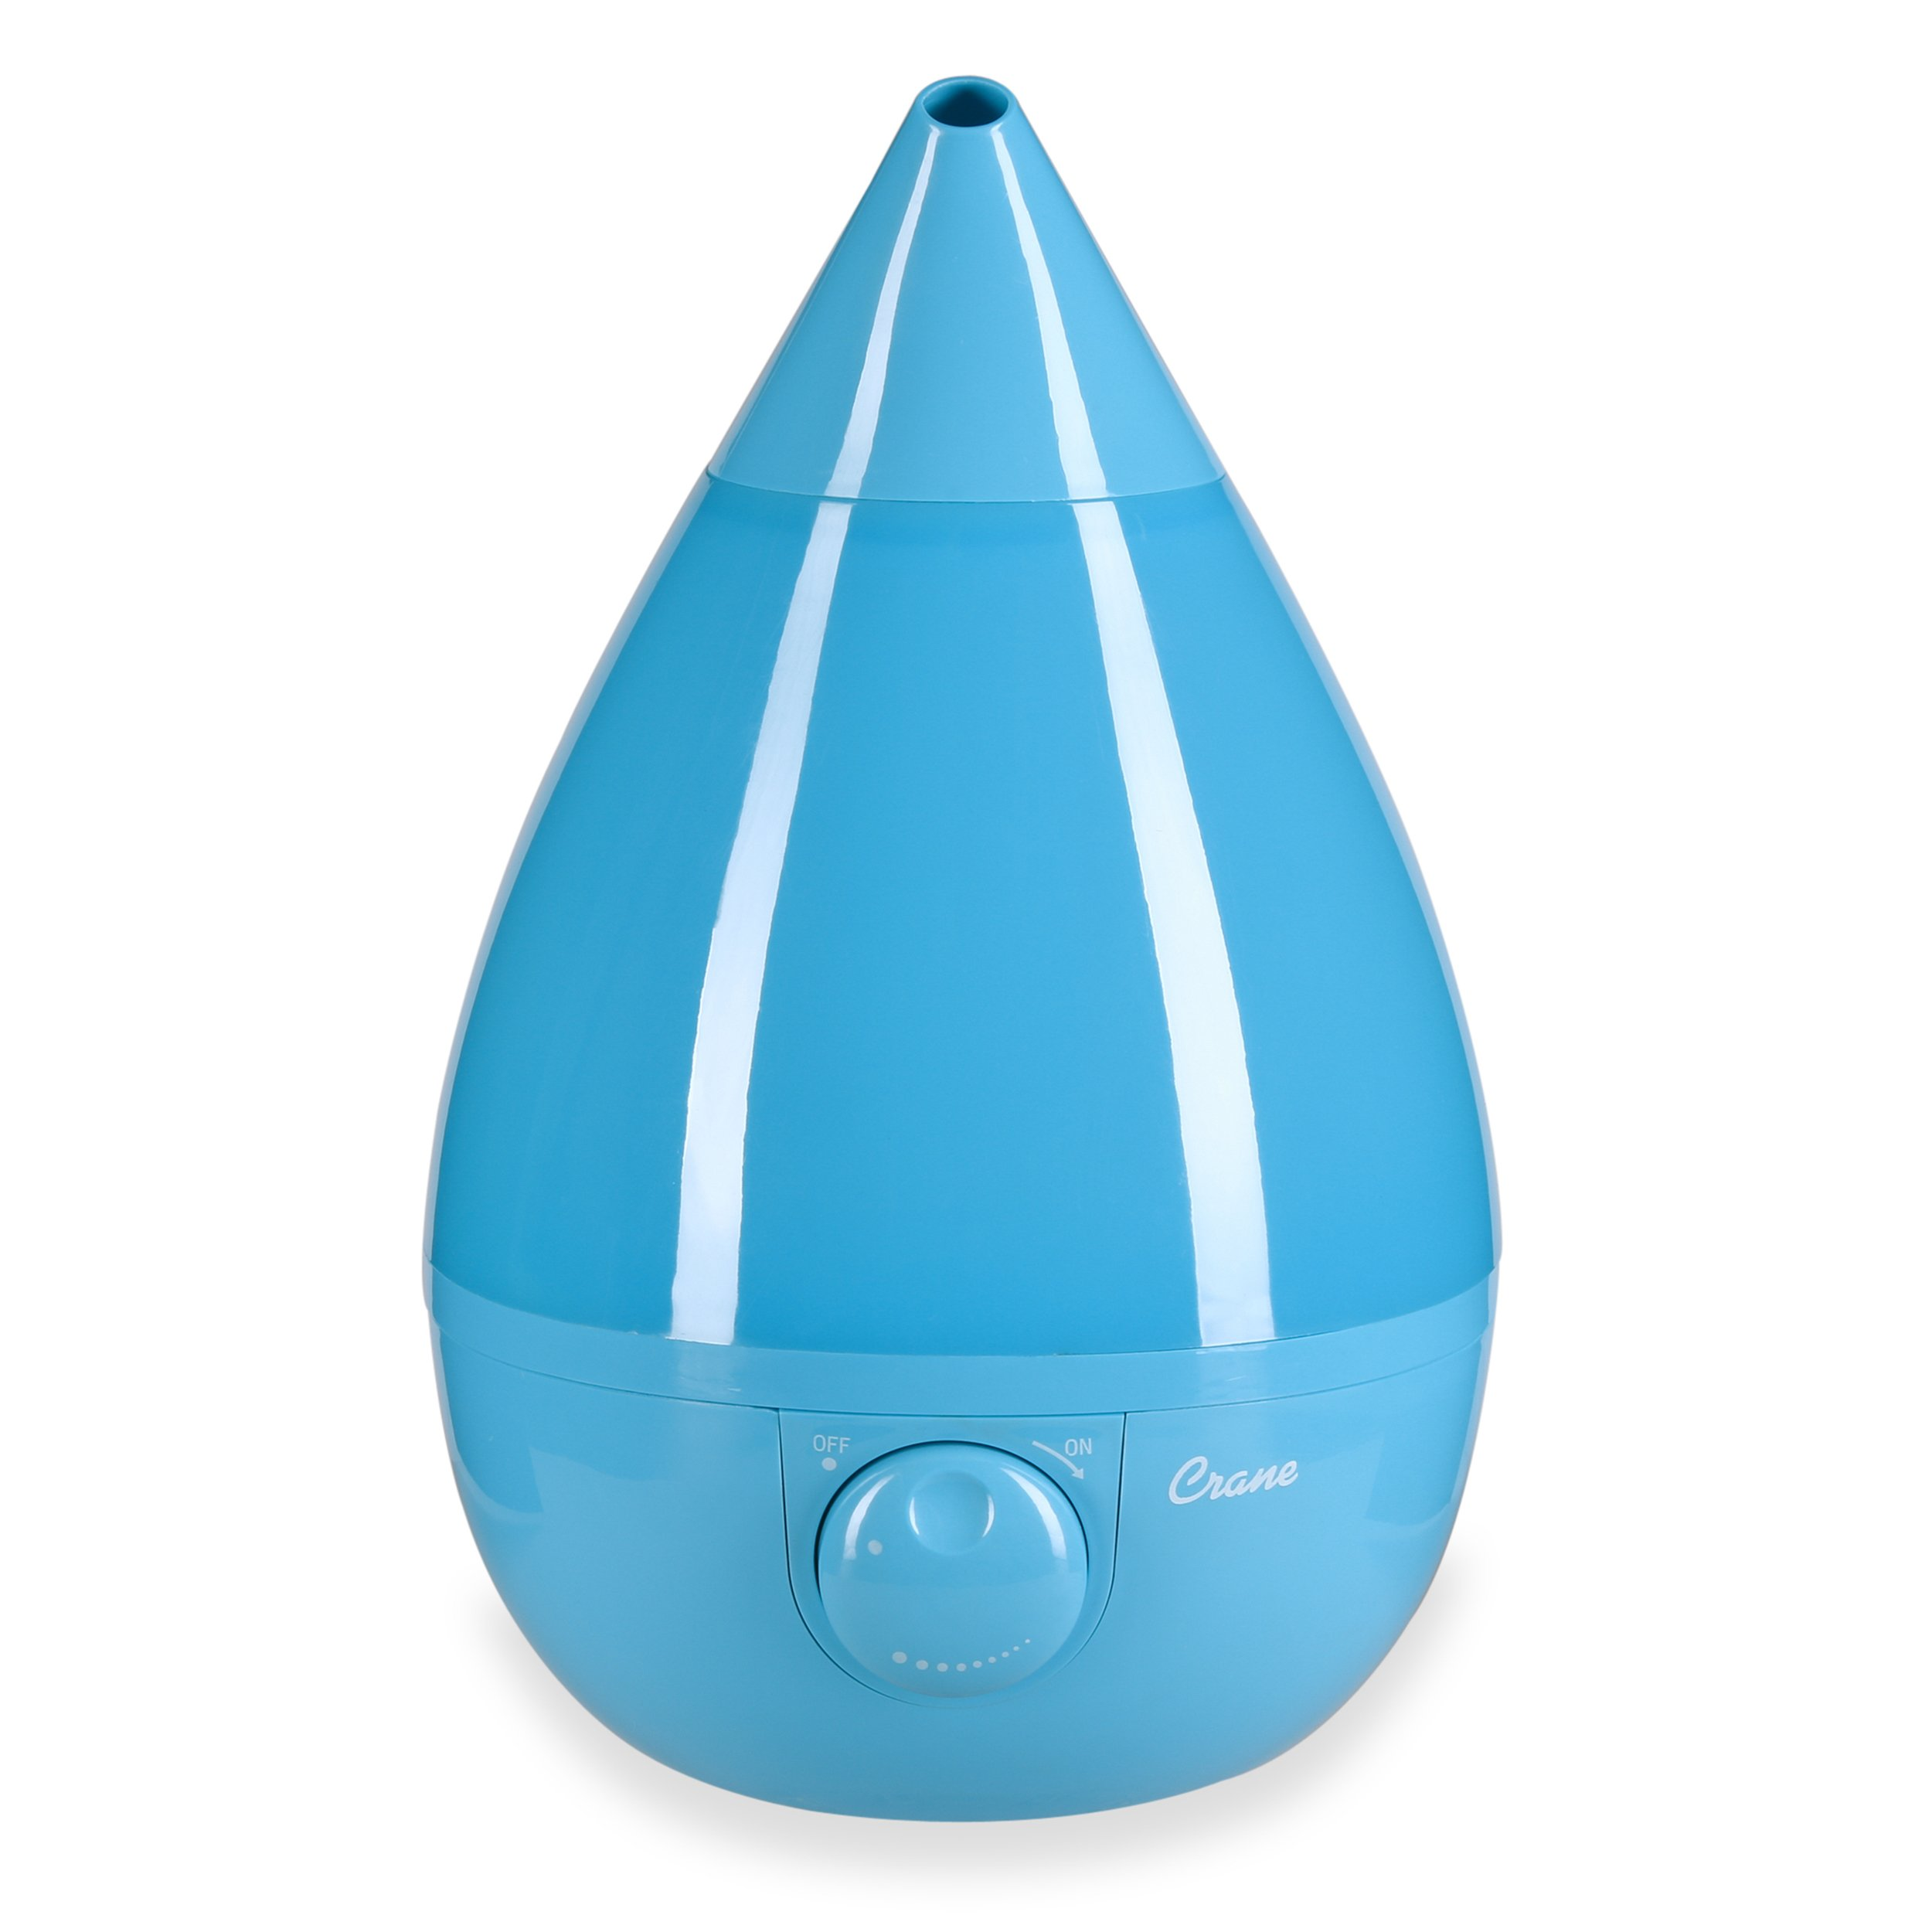 Crane USA Cool Mist Humidifier, Aqua